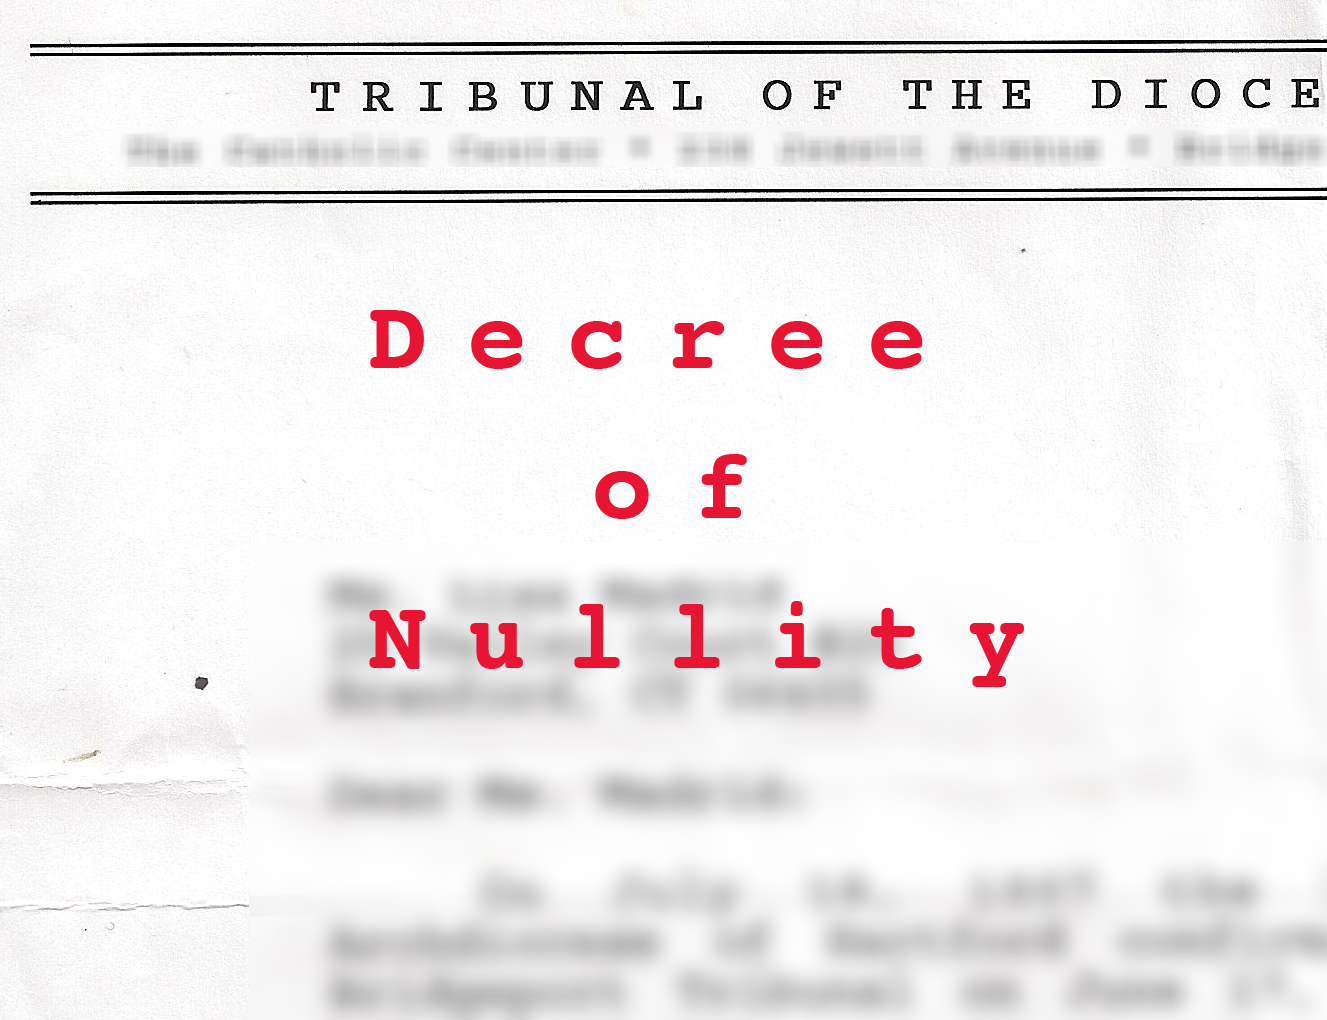 Decree of nullity form